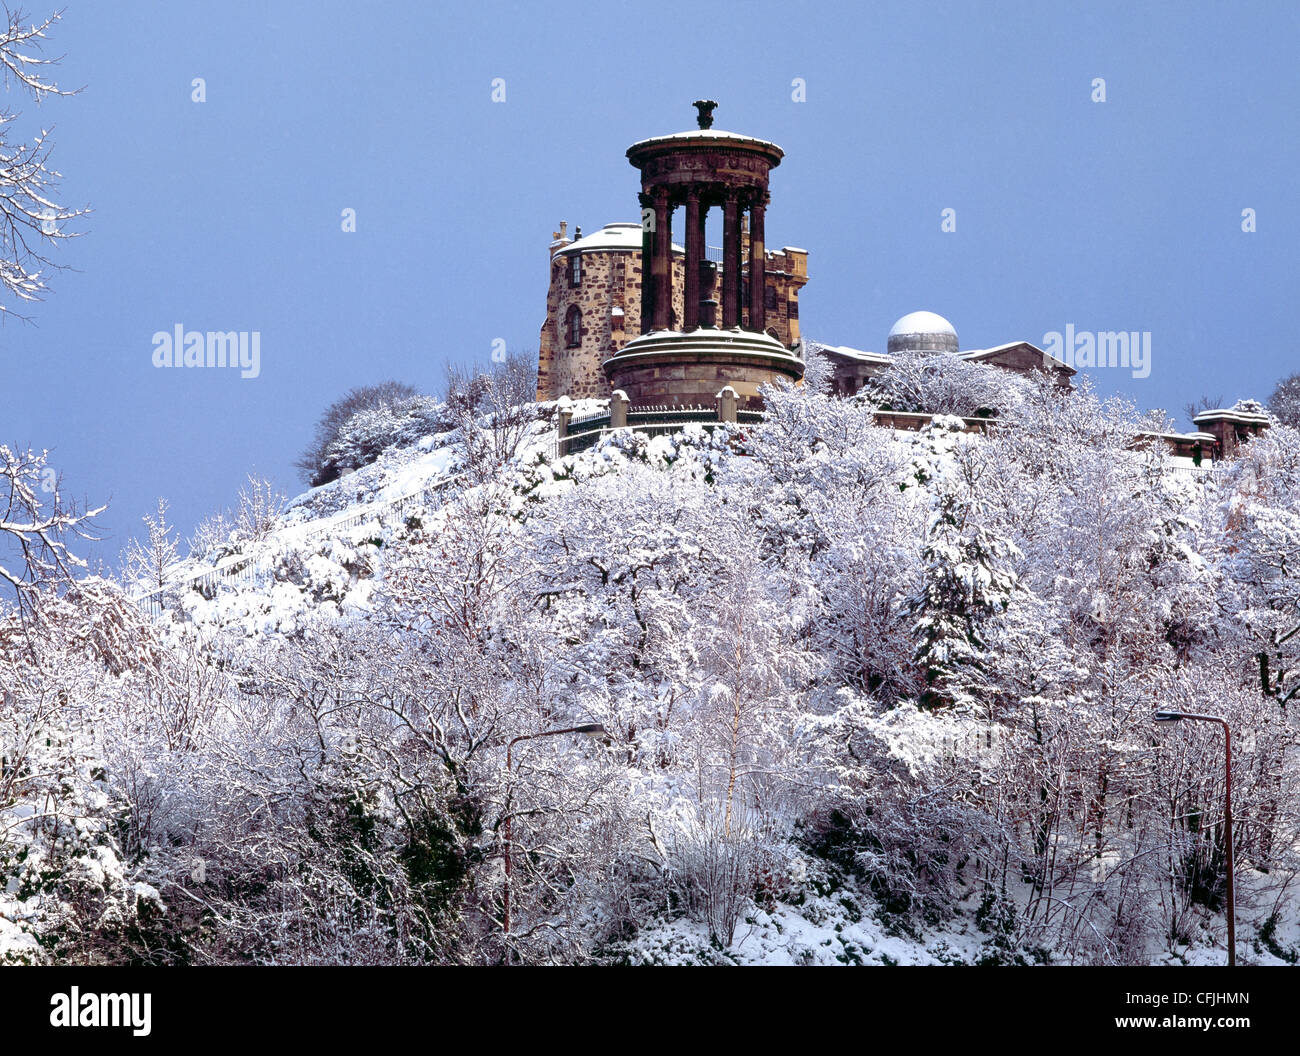 Calton Hill, Edinburgh, Scotland - Stock Image